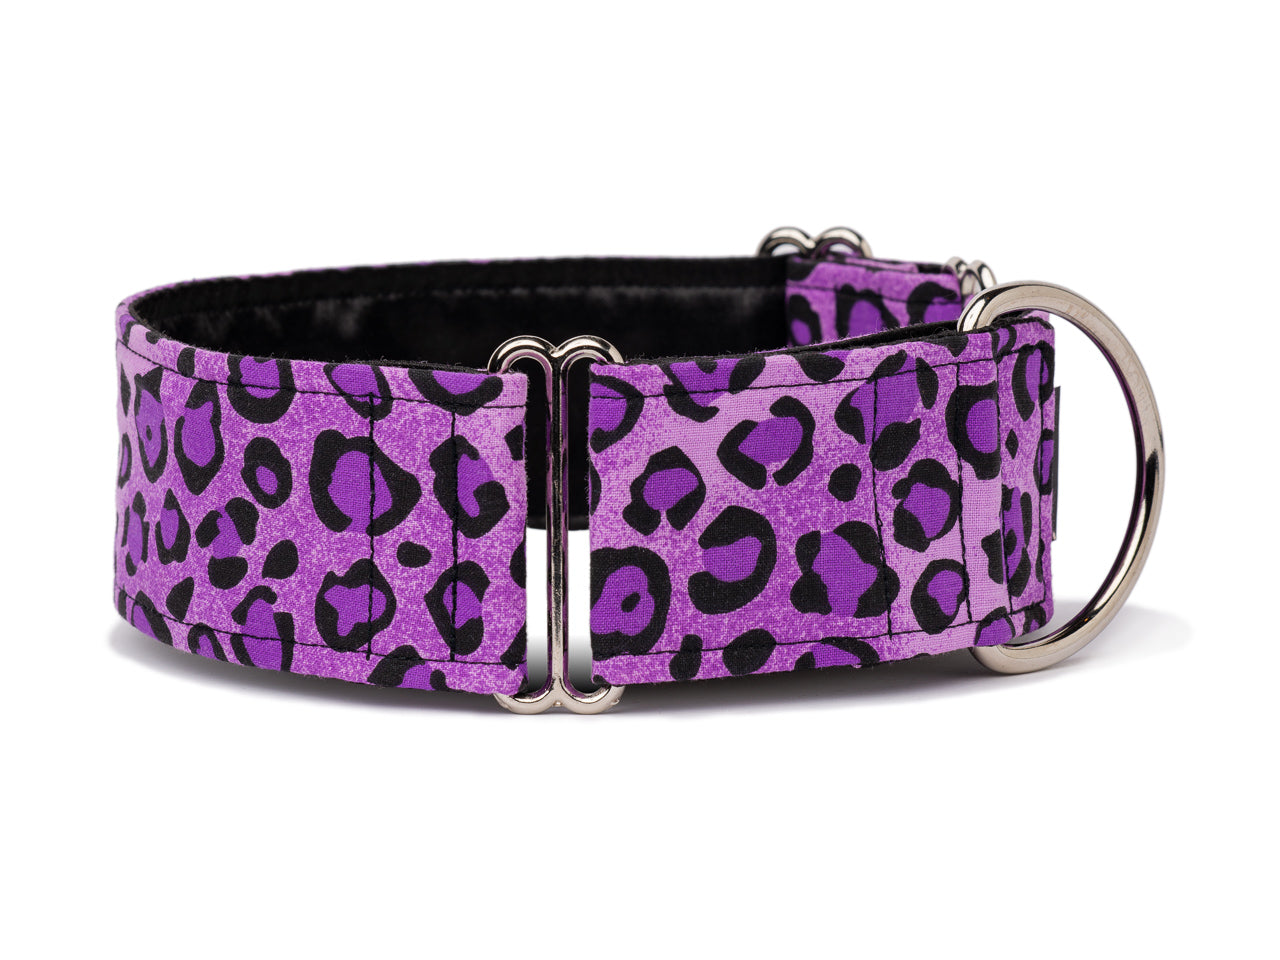 This funky purple leopard print adds a bright pop of color and personality for any fashion forward pooch!